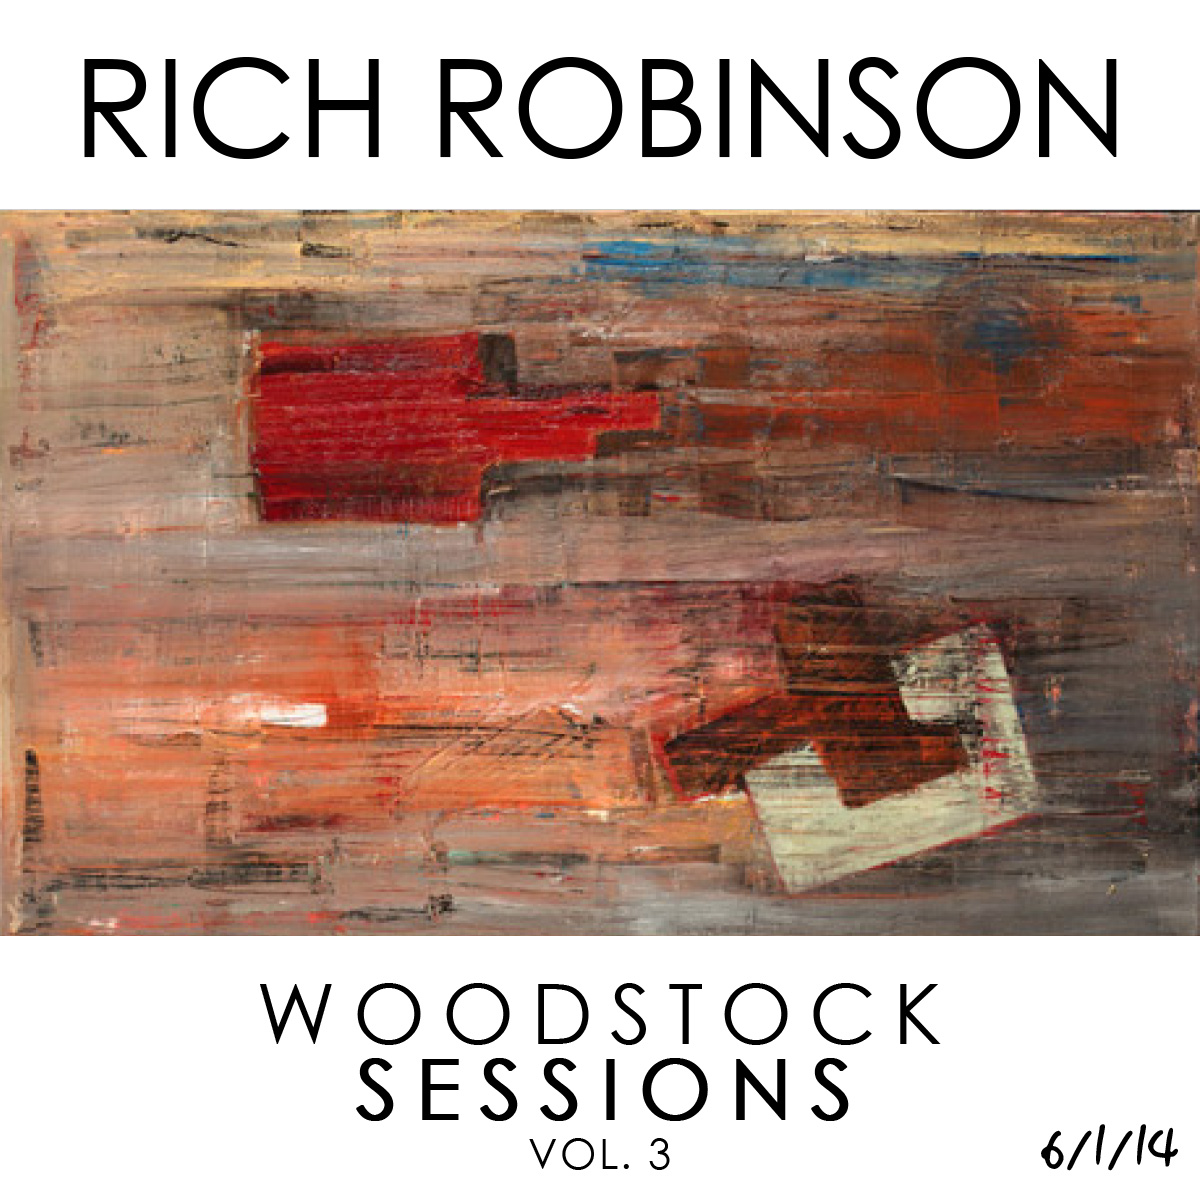 Woodstock Sessions Volume 3 – Rich Robinson